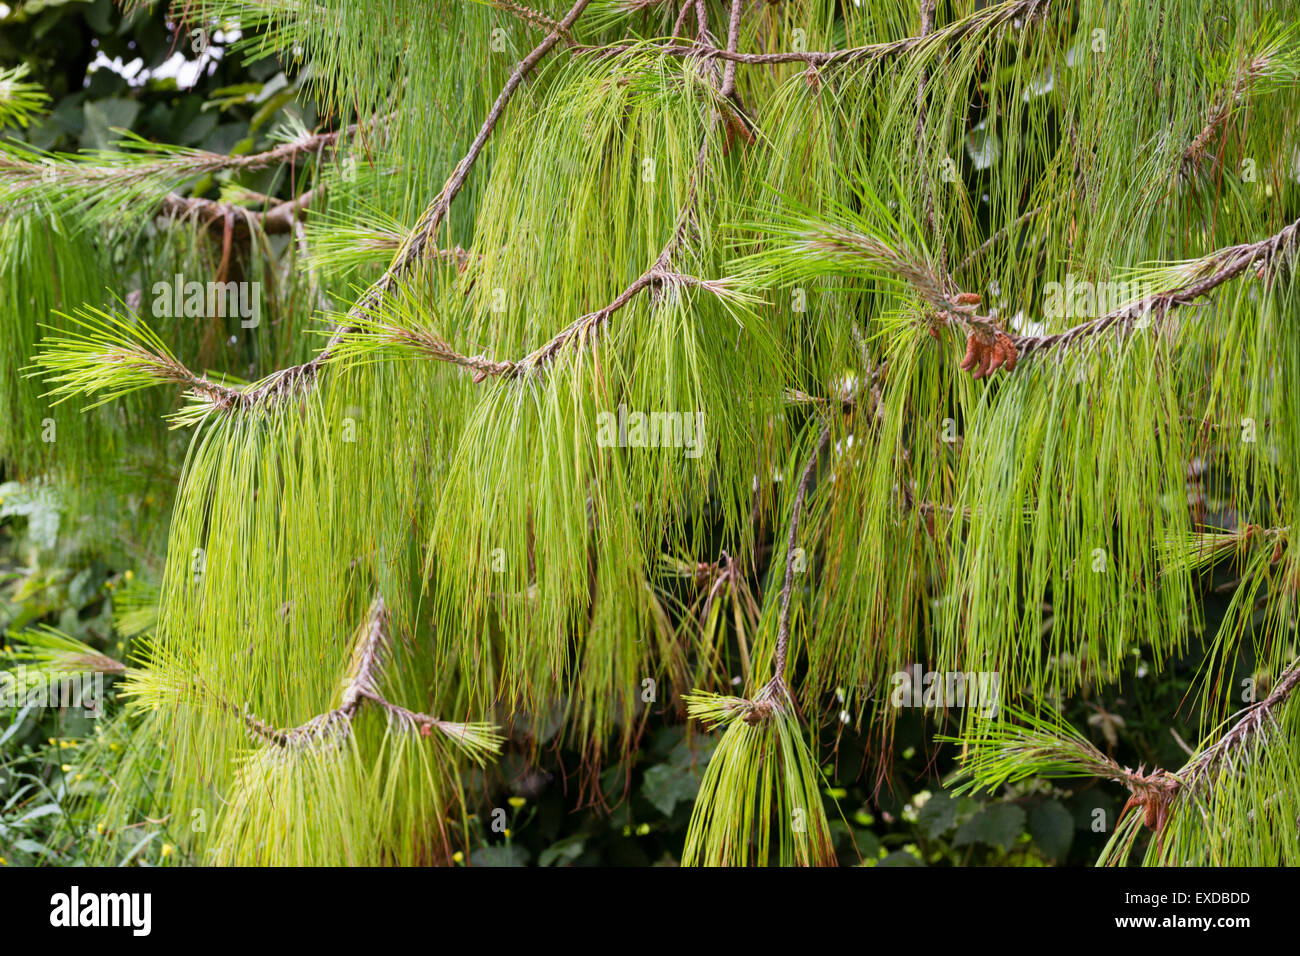 Long, dangling needles of the Mexican weeping pine, Pinus patula - Stock Image